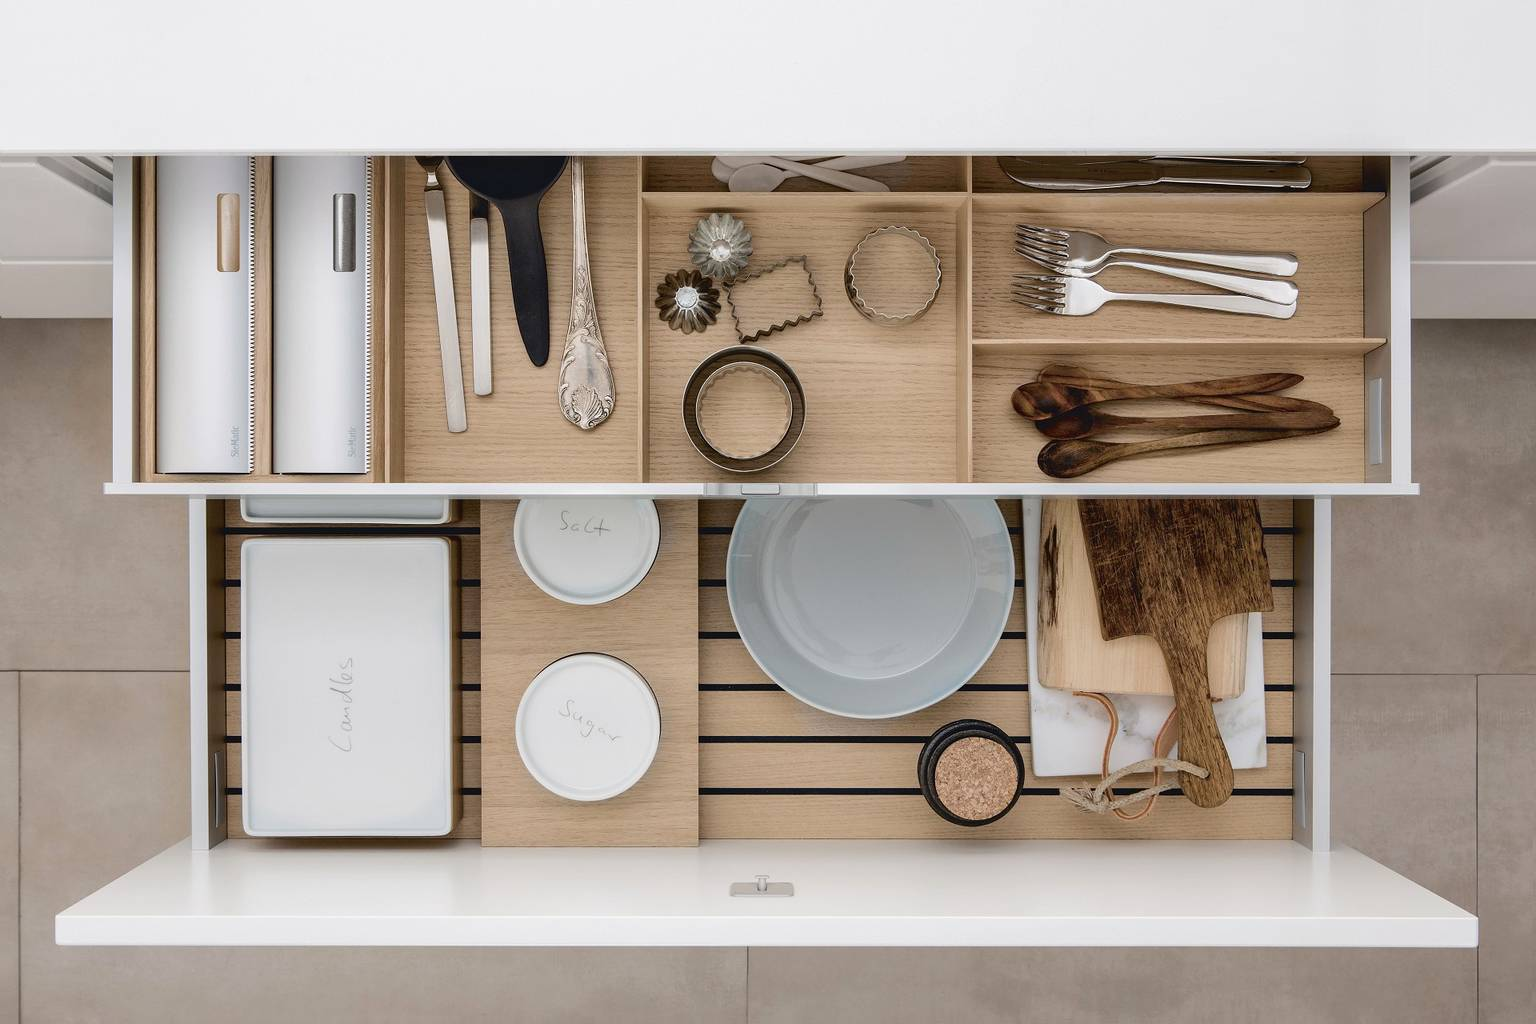 Versatile combination of SieMatic kitchen accessories in light oak wood